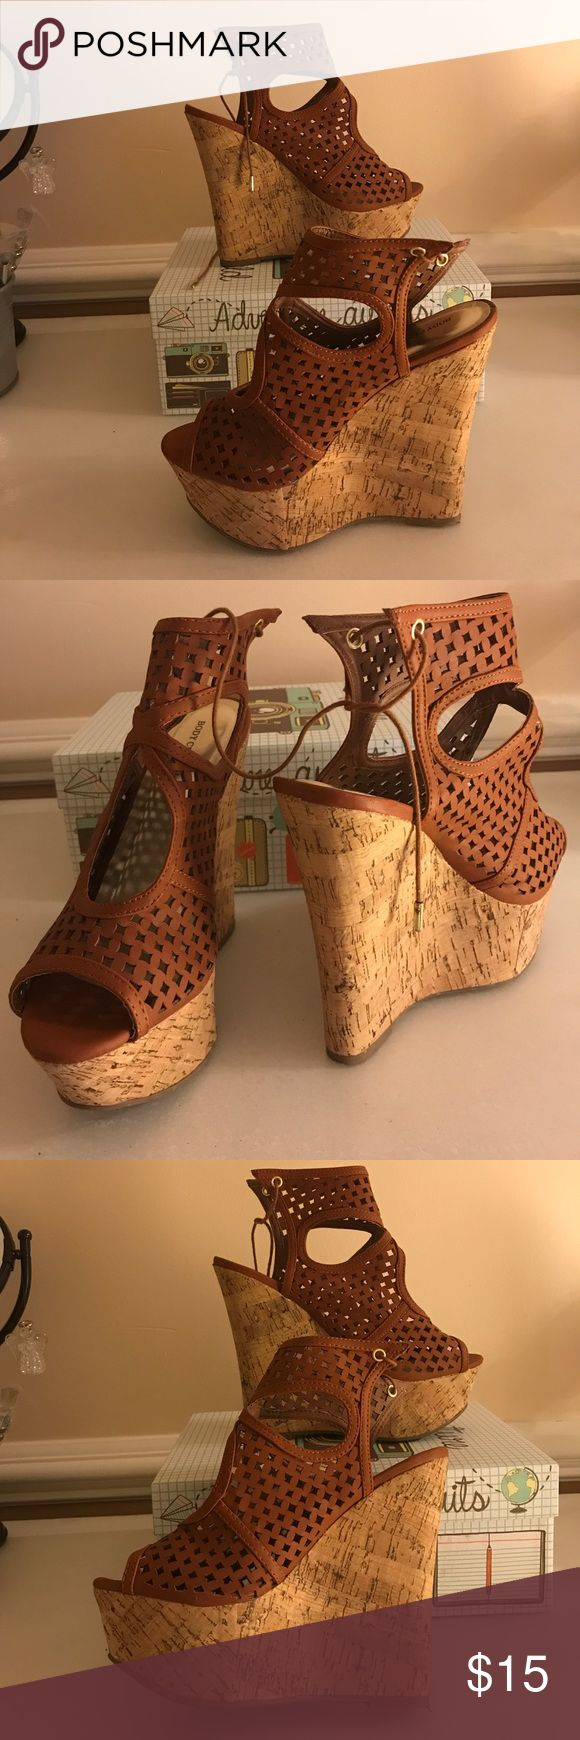 Body central brown sandals heels Us size 8 Hey friends 🙌🏻 I am trading/selling my almost new sandal-heels. They are super comfortable and even if I'm not really good at walking in heels, these support you perfectly! US size 8 Body Central Shoes Heels